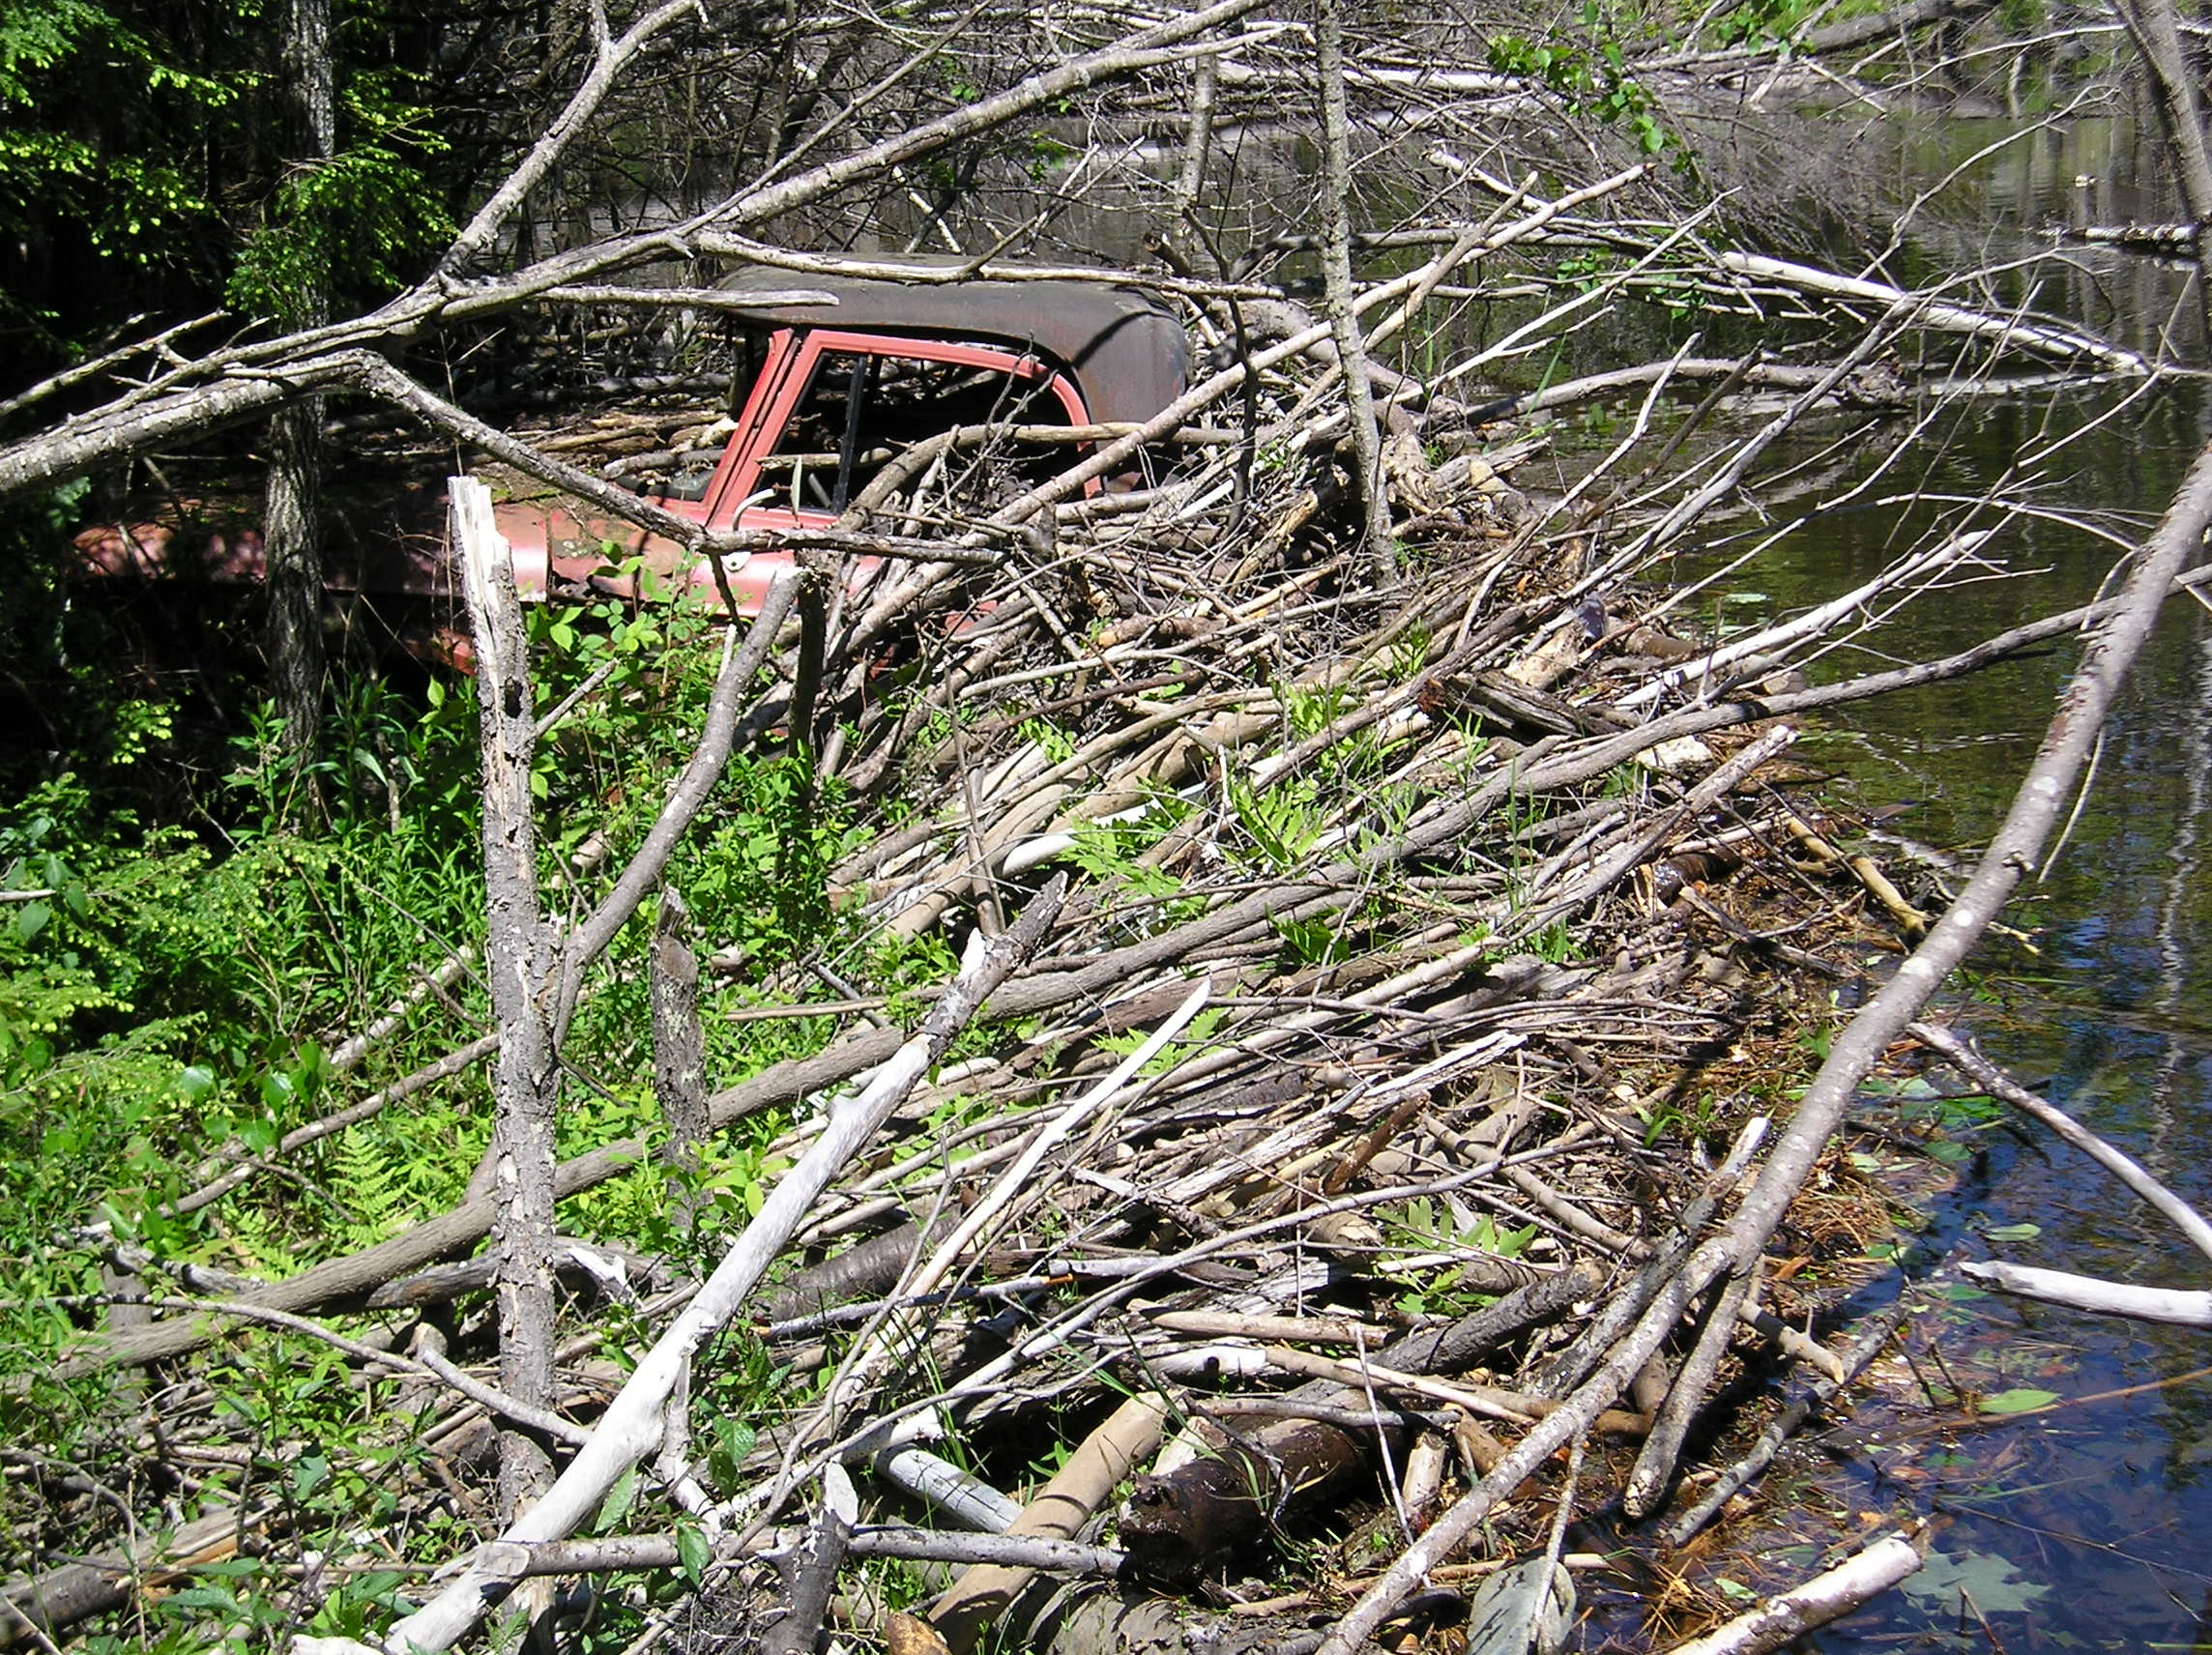 A pick-up truck swallowed whole by a beaver dam. | Photo Courtesy of Mike Callahan,  beaversolutions.com